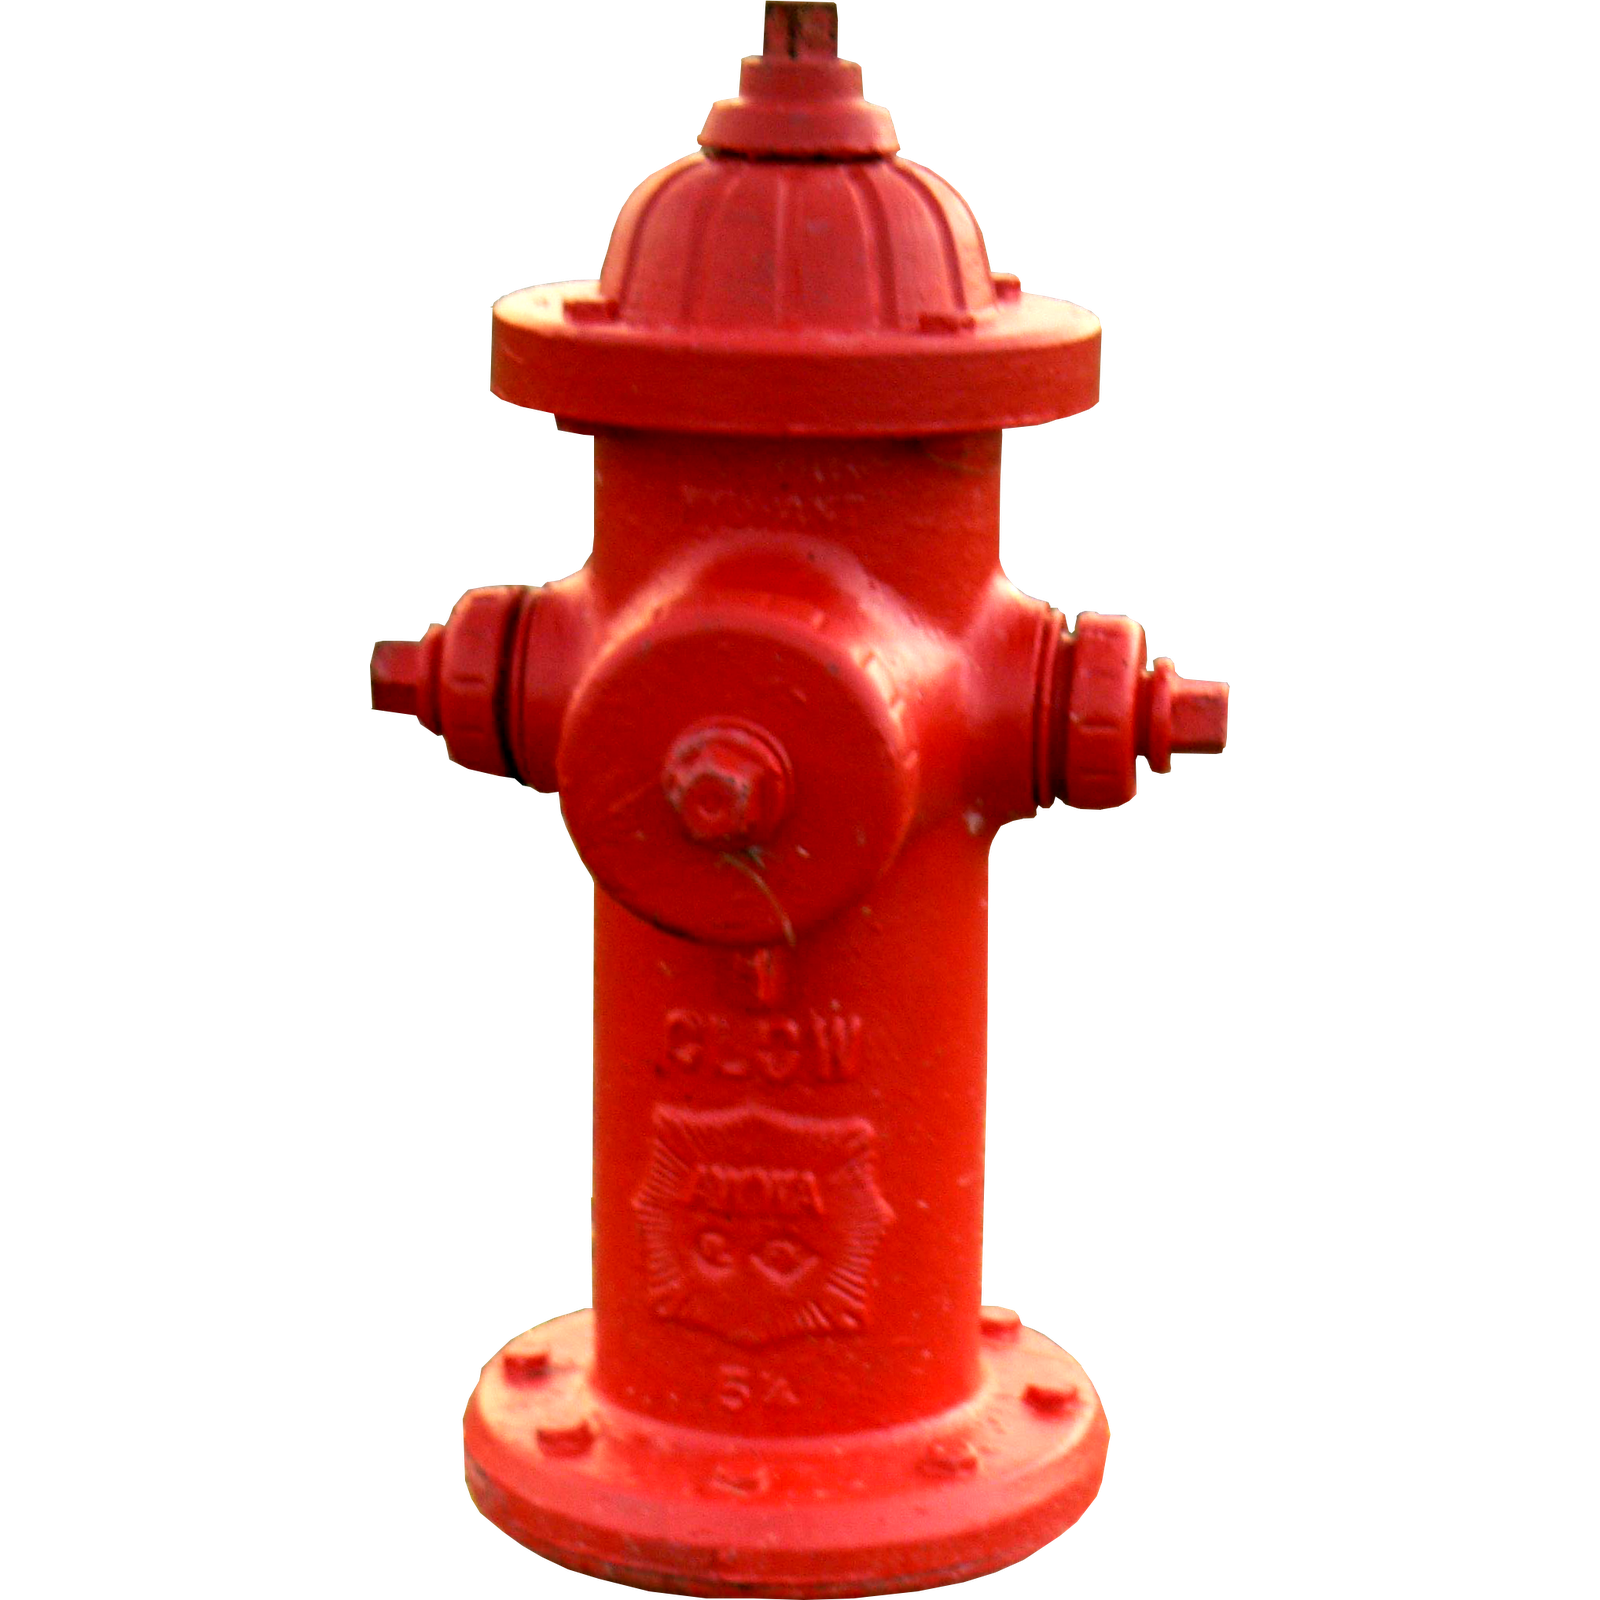 fire_hydrant_PNG41074